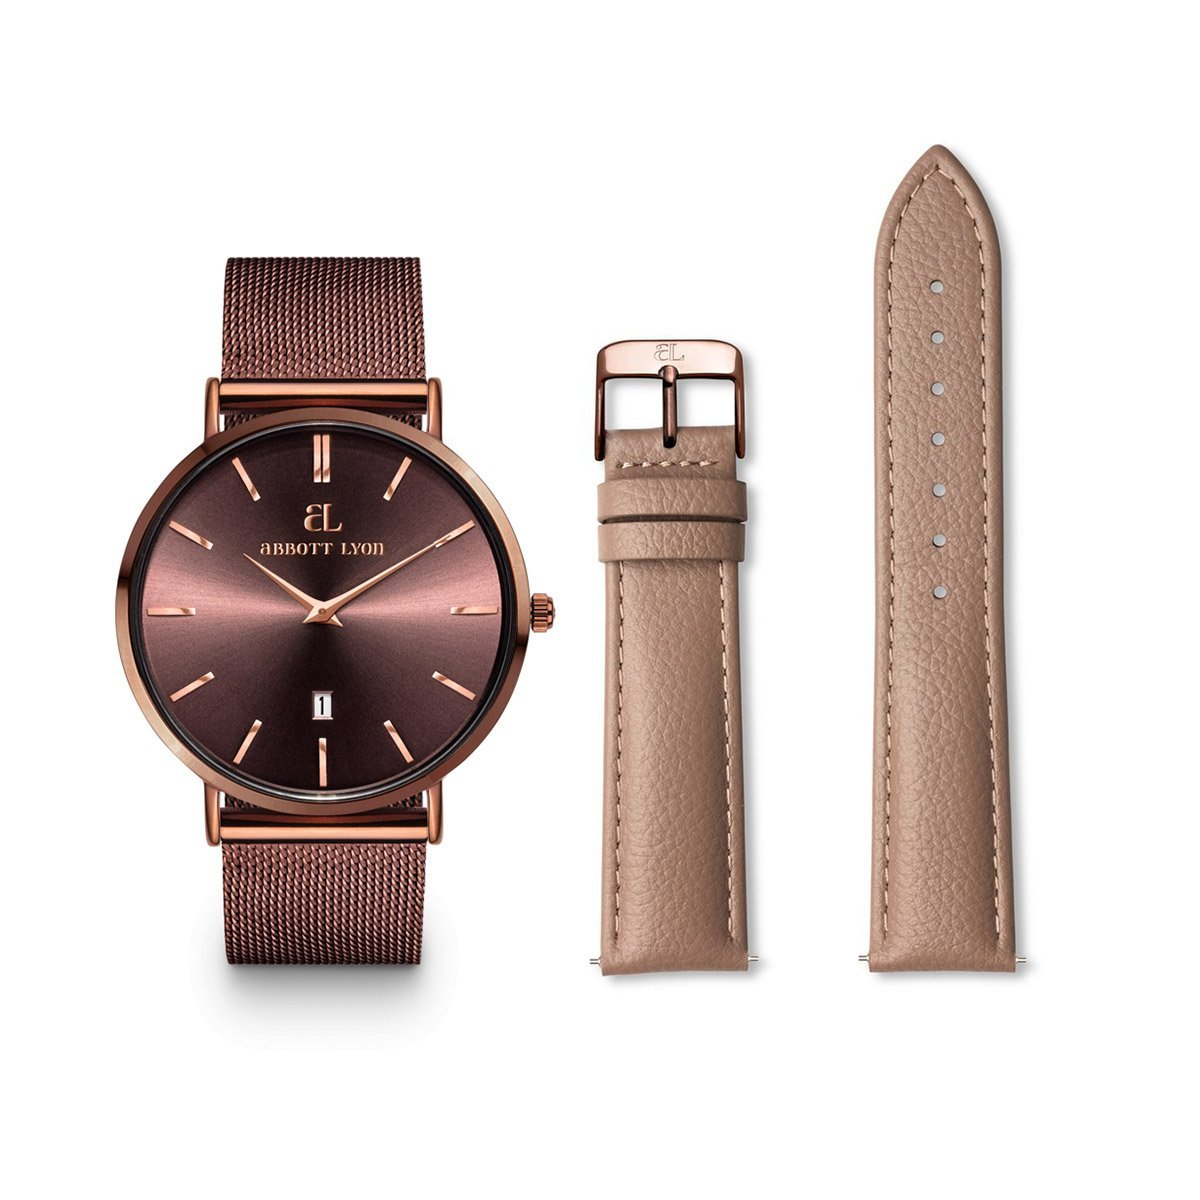 The Mocha Chain Stellar 40 Mocha Leather Strap Gift Set (Mocha/Mocha)